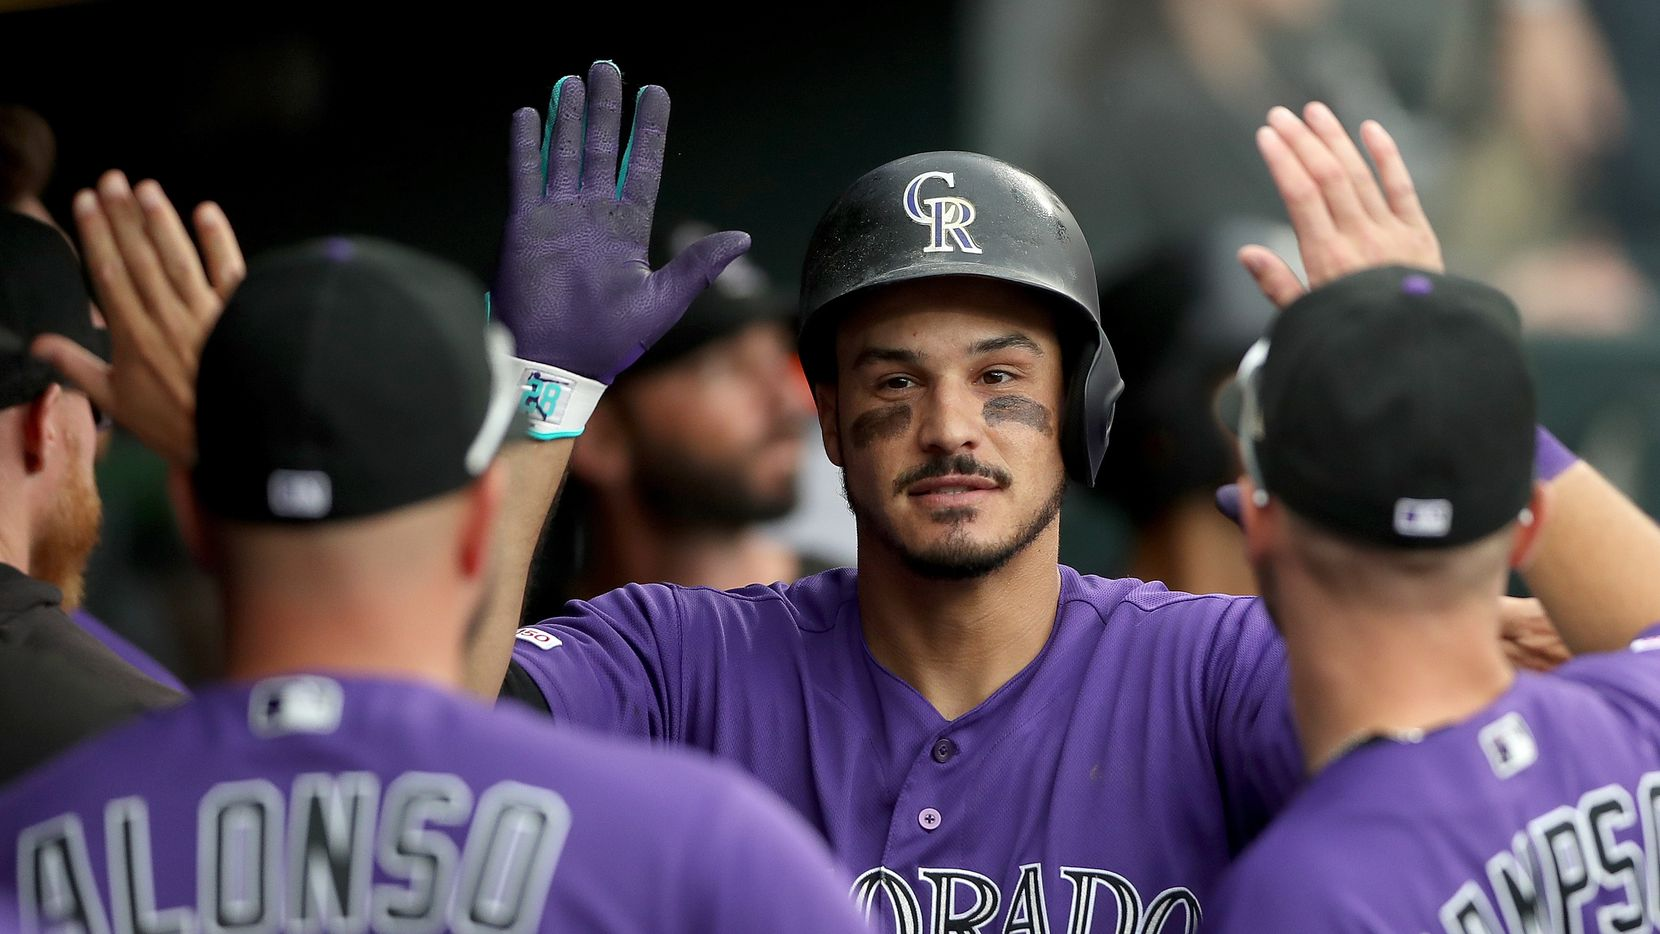 DENVER, COLORADO - AUGUST 04: Nolan Arenado #28 of the Colorado Rockies celebrates in the dugout after hitting a home run in the fifth inning against the San Francisco Giants at Coors Field on August 04, 2019 in Denver, Colorado.